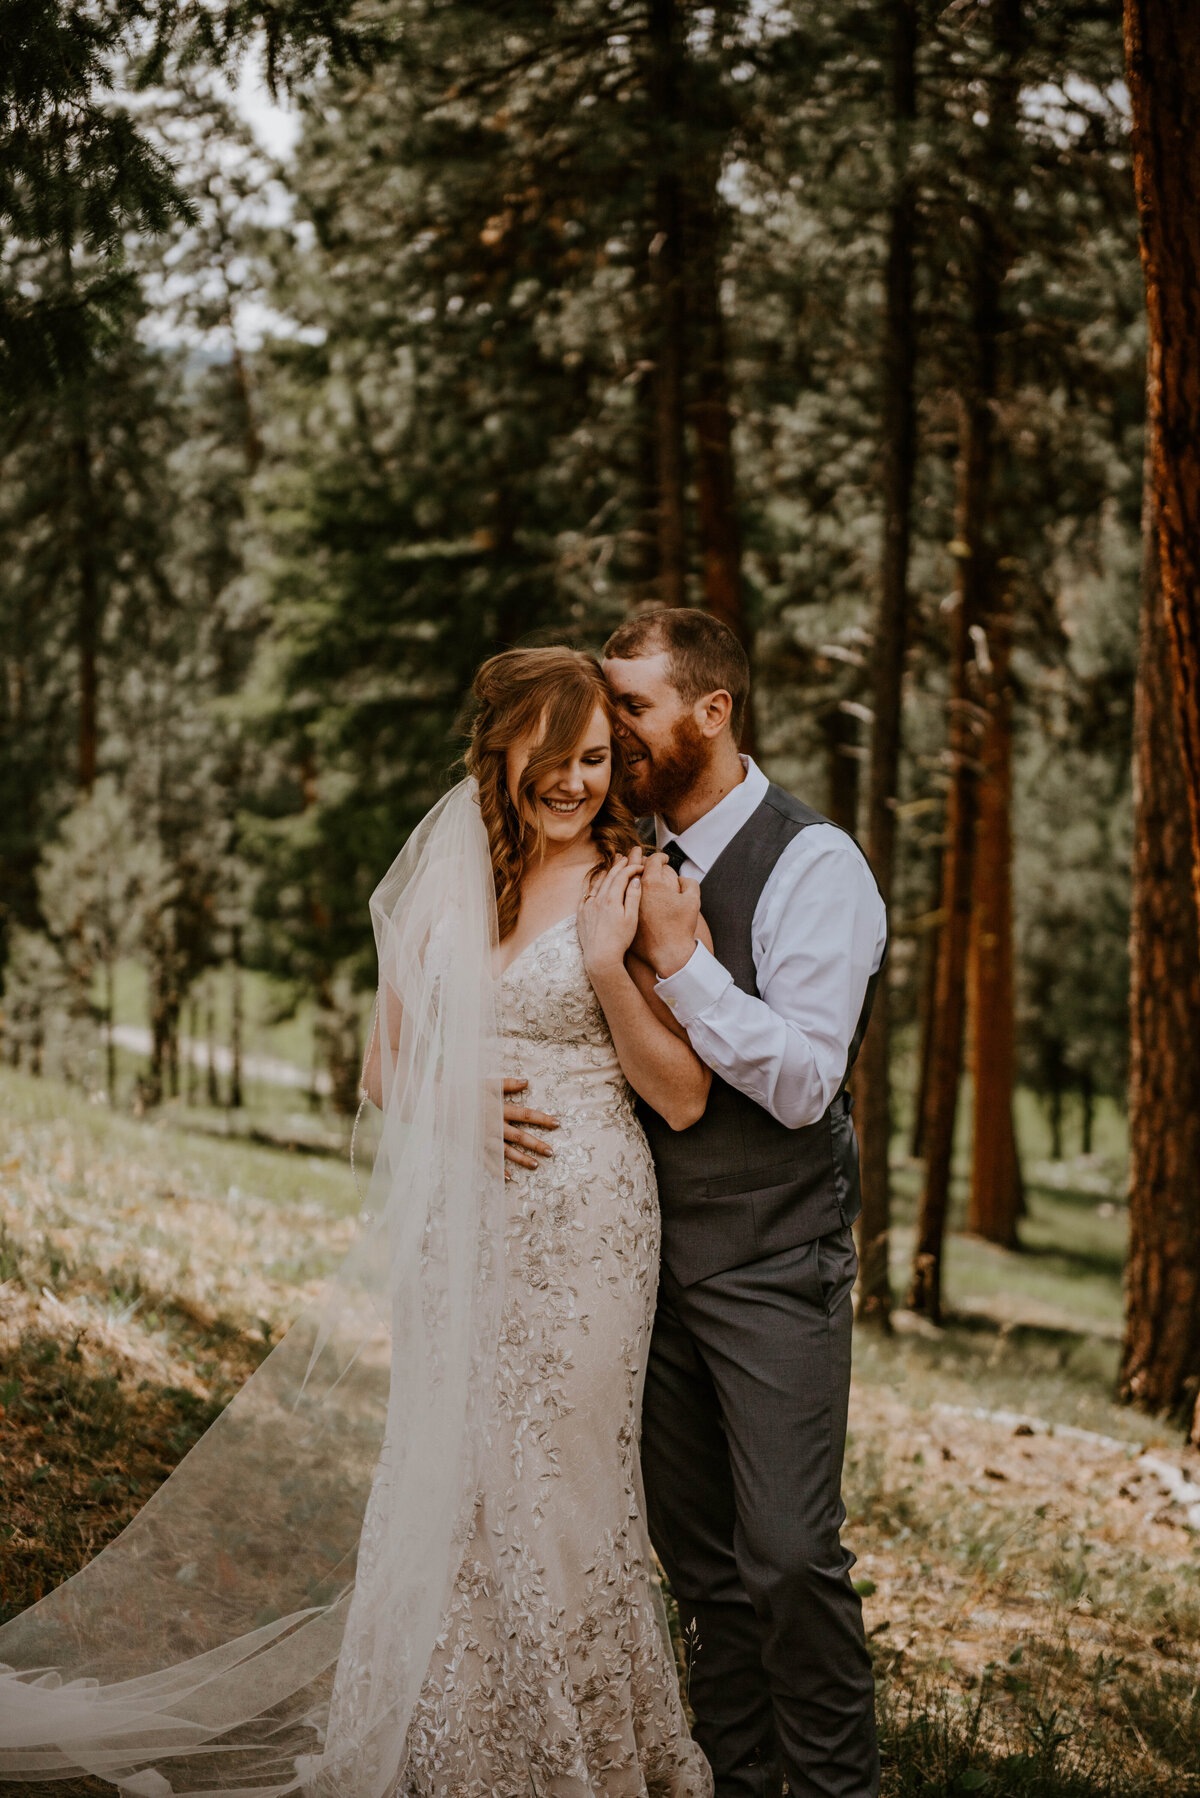 ochoco-forest-central-oregon-elopement-pnw-woods-wedding-covid-bend-photographer-inspiration1219